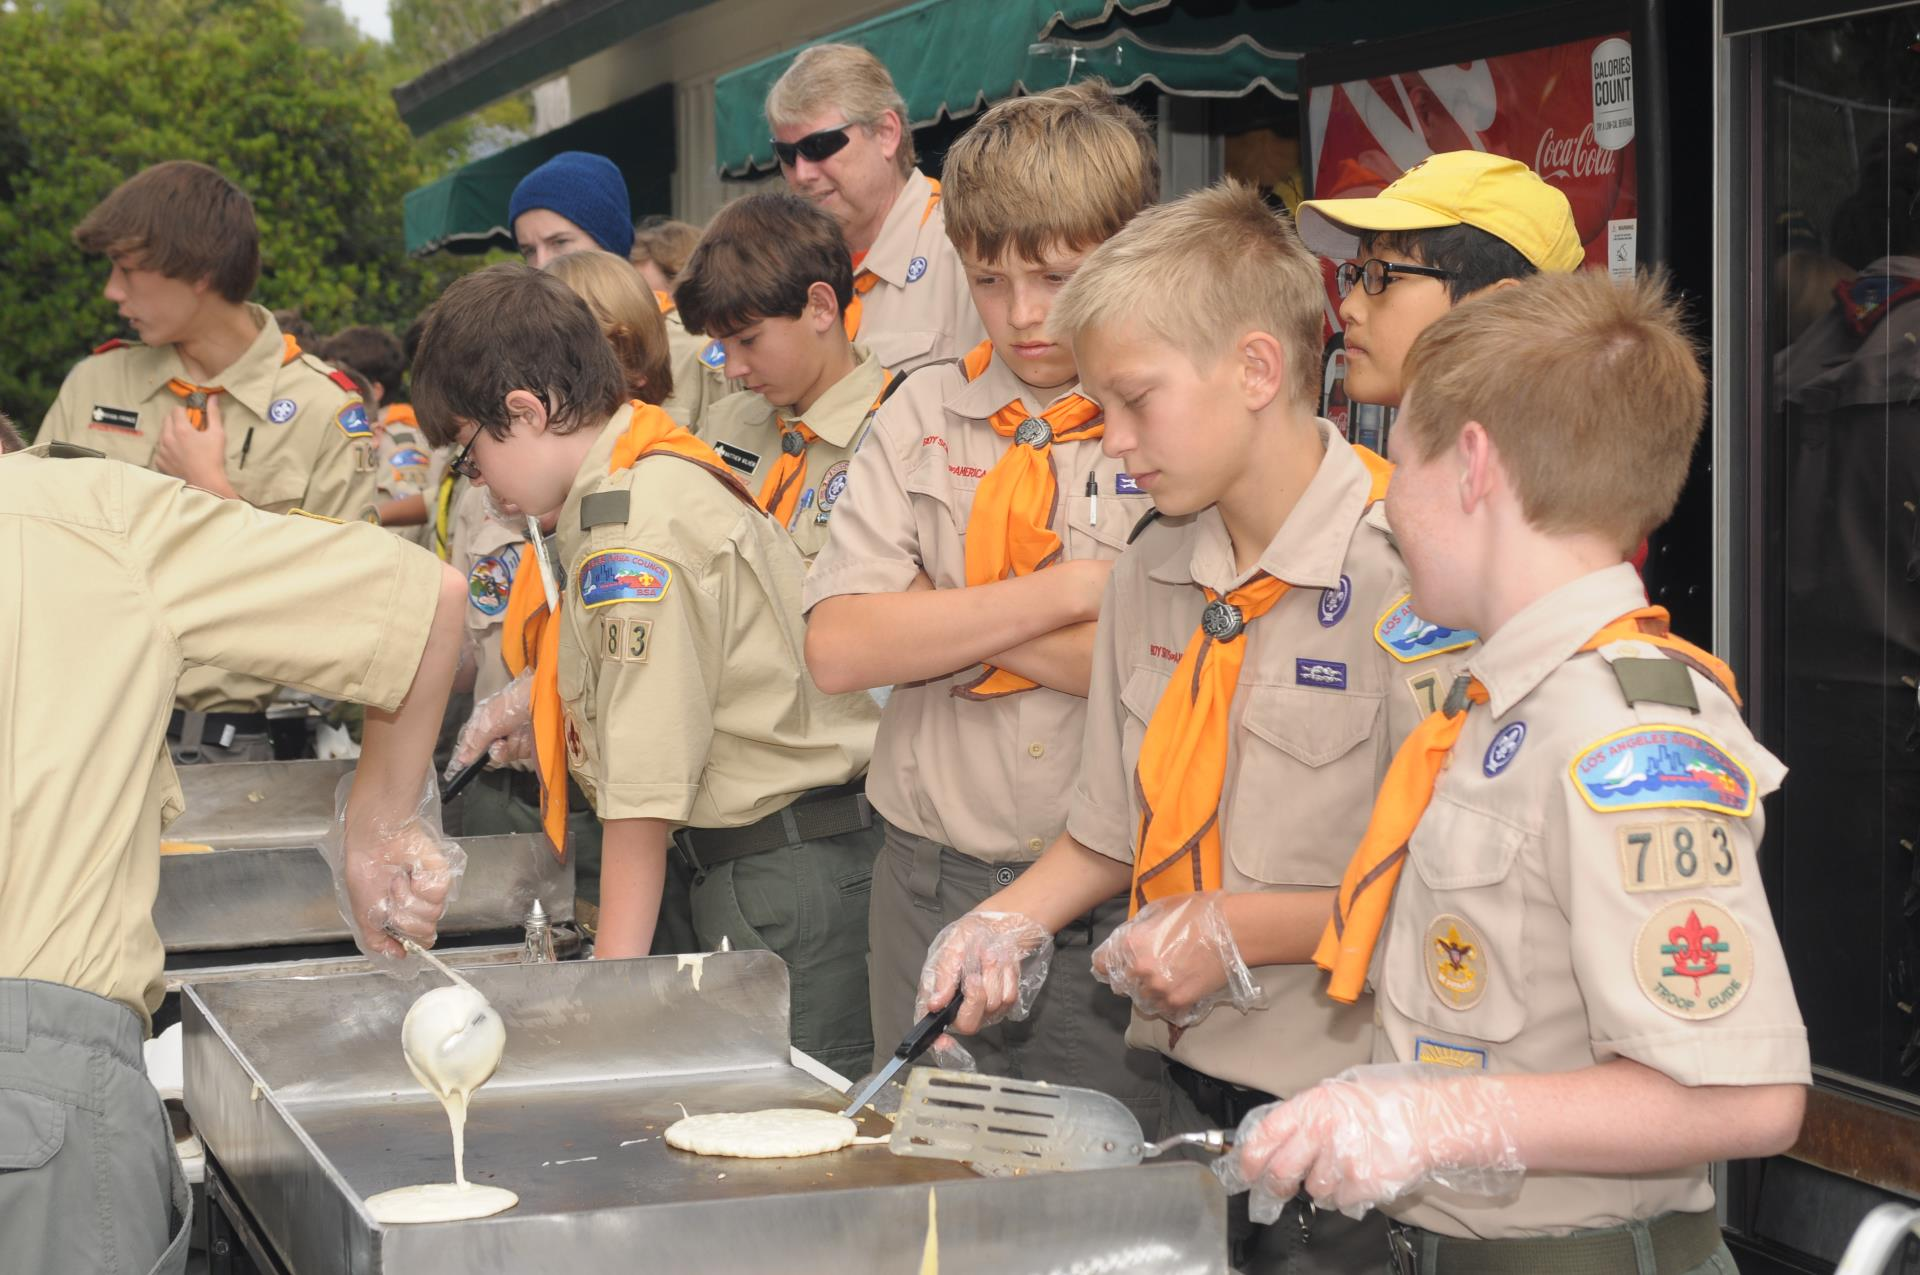 Boyscouts making pancakes at 2015 Mayor's Ride